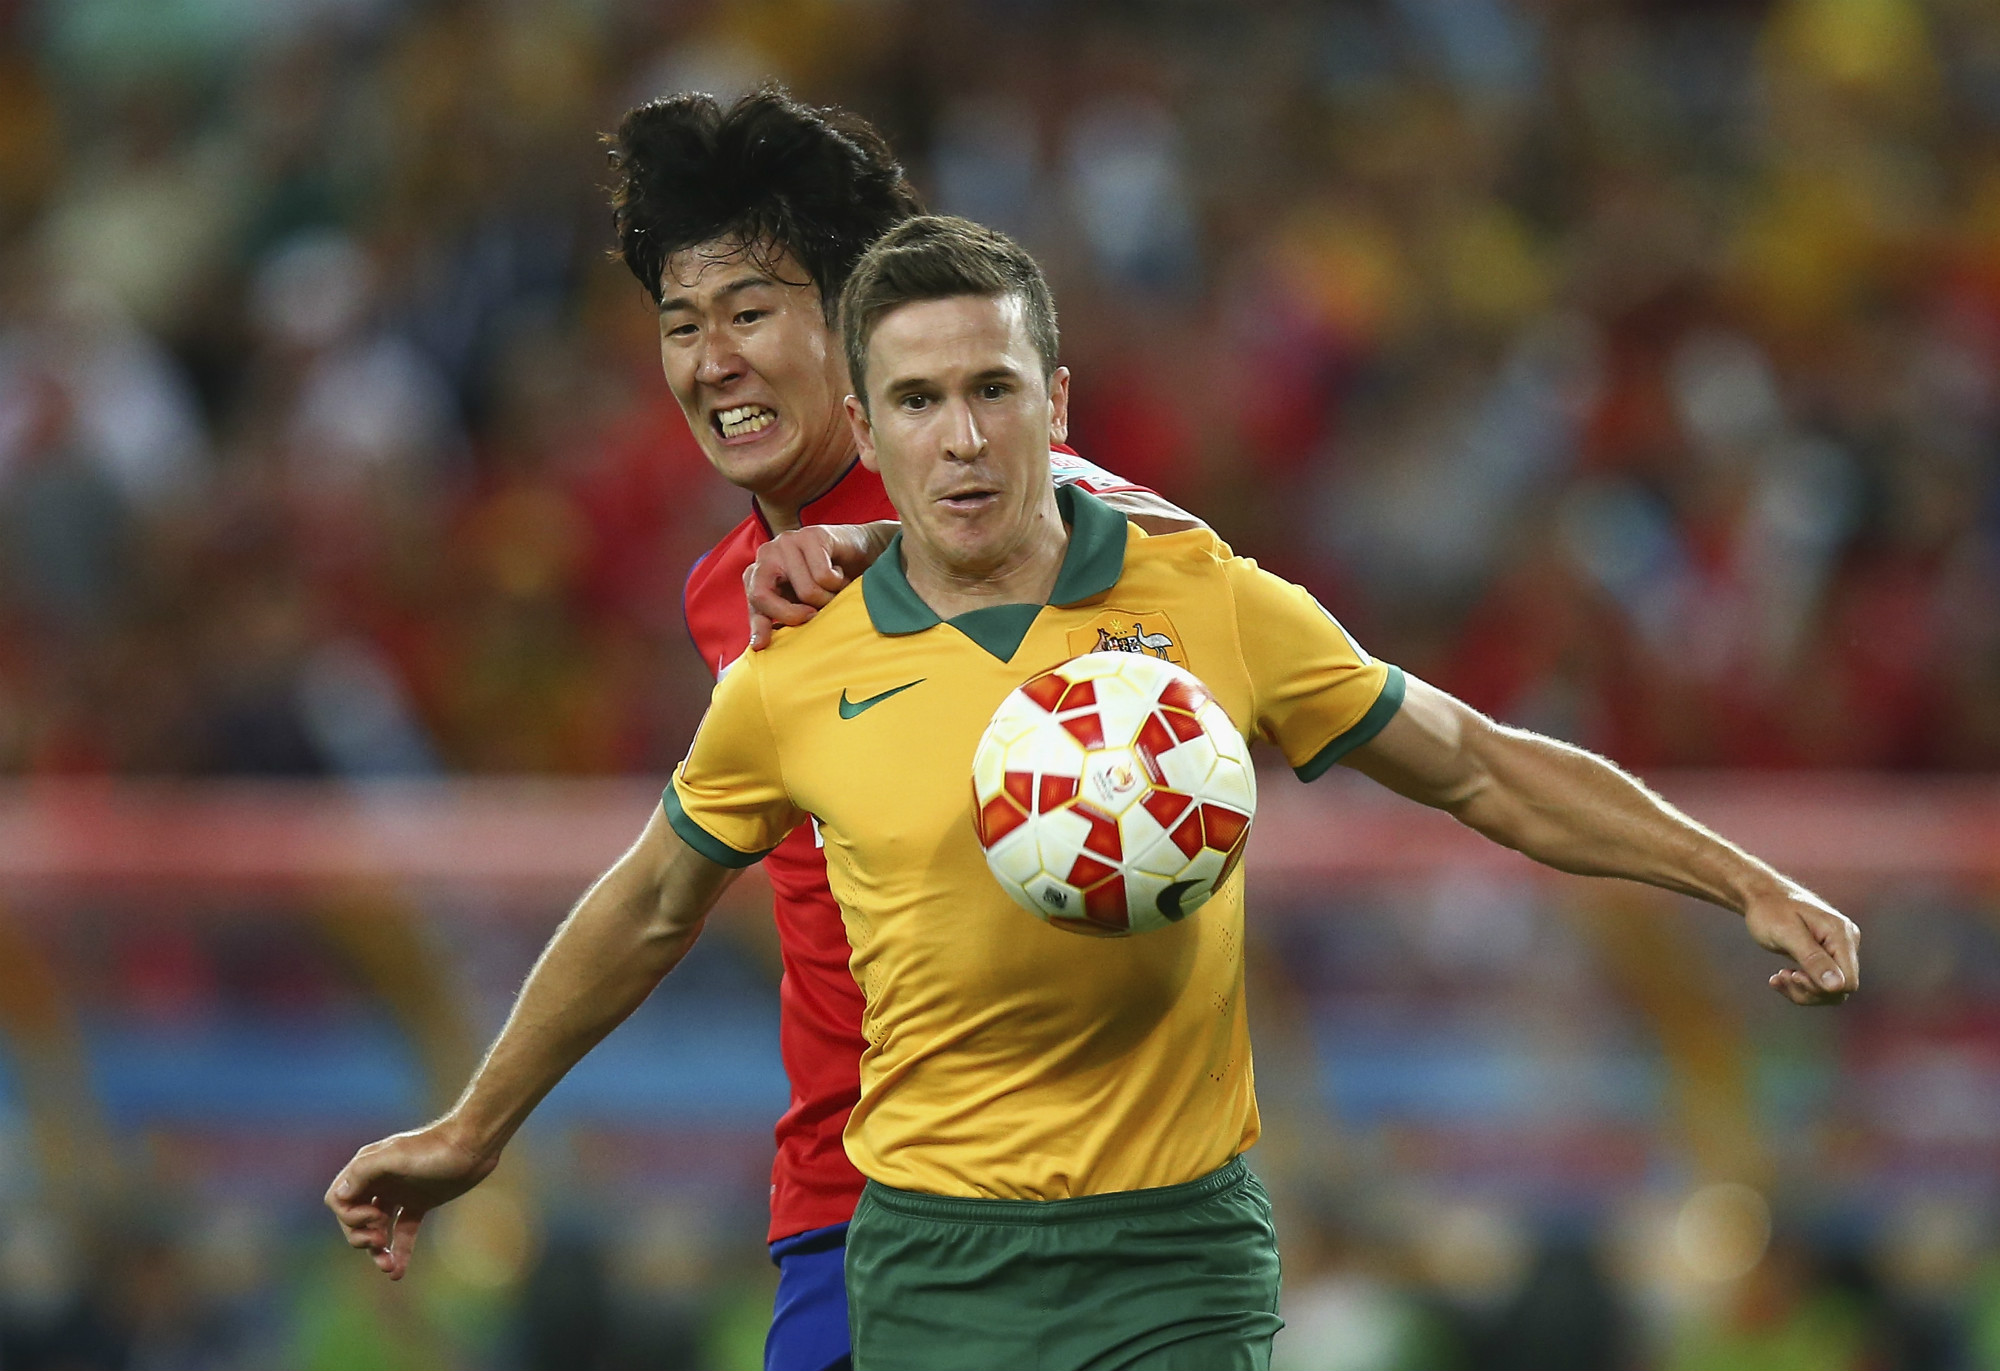 Matt McKay, playing for the Caltex Socceroos, is pressured by Son Heung-min